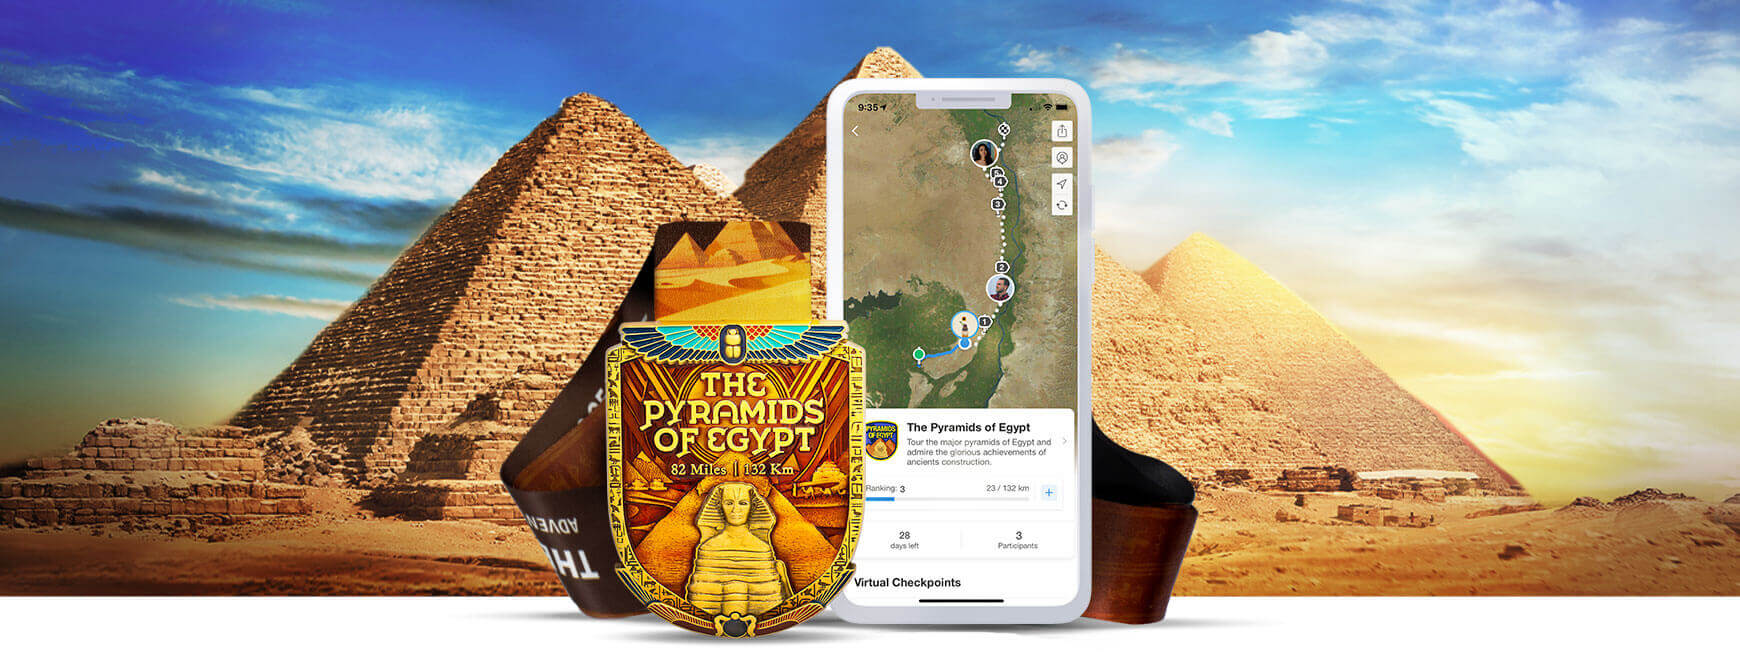 Pyramids of Egypt Virtual Challenge